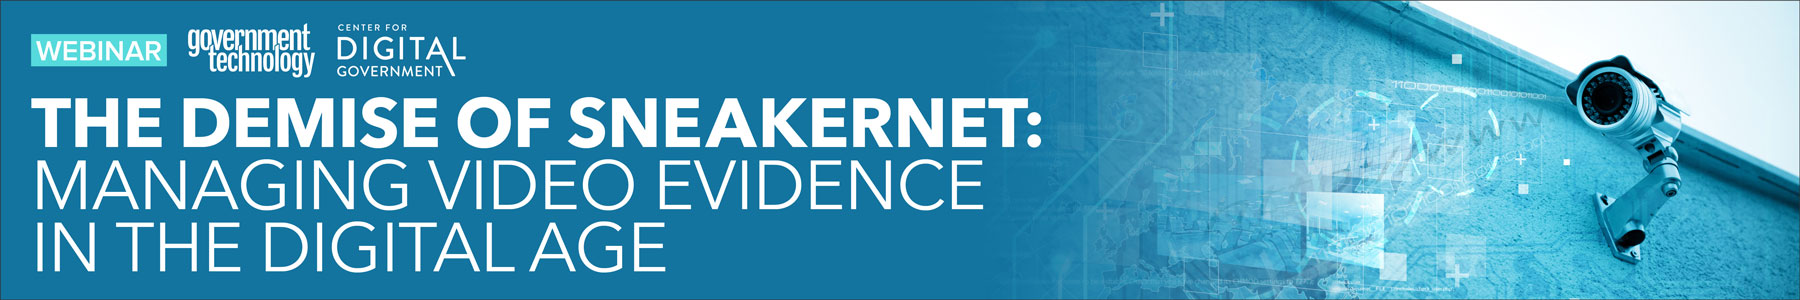 The Demise of Sneakernet: Managing Video Evidence in the Digital Age